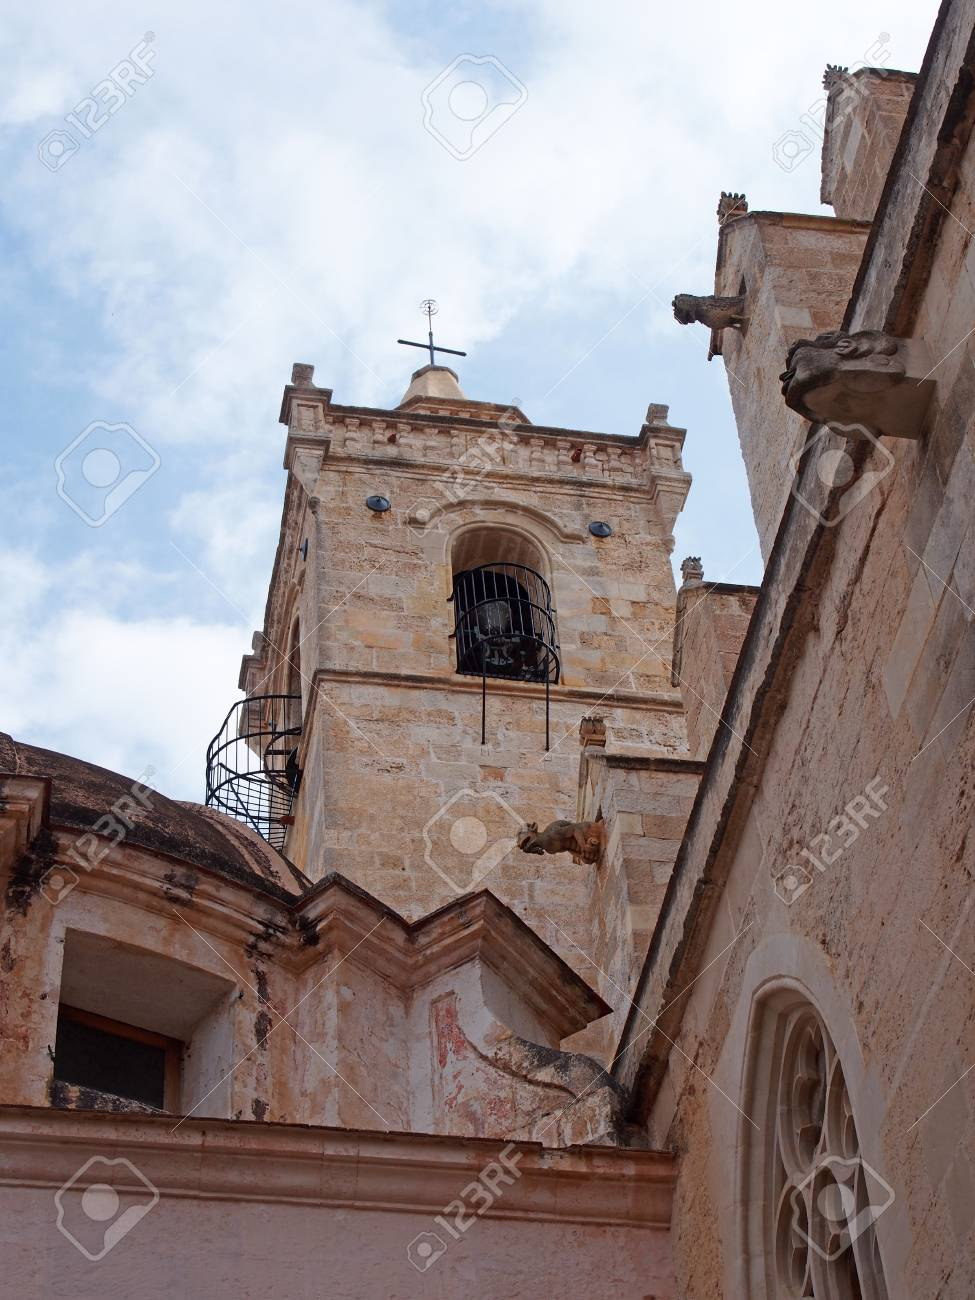 0f227f1af A close up view of the bell tower and gargoyles of the Santa Maria  Cathedral in